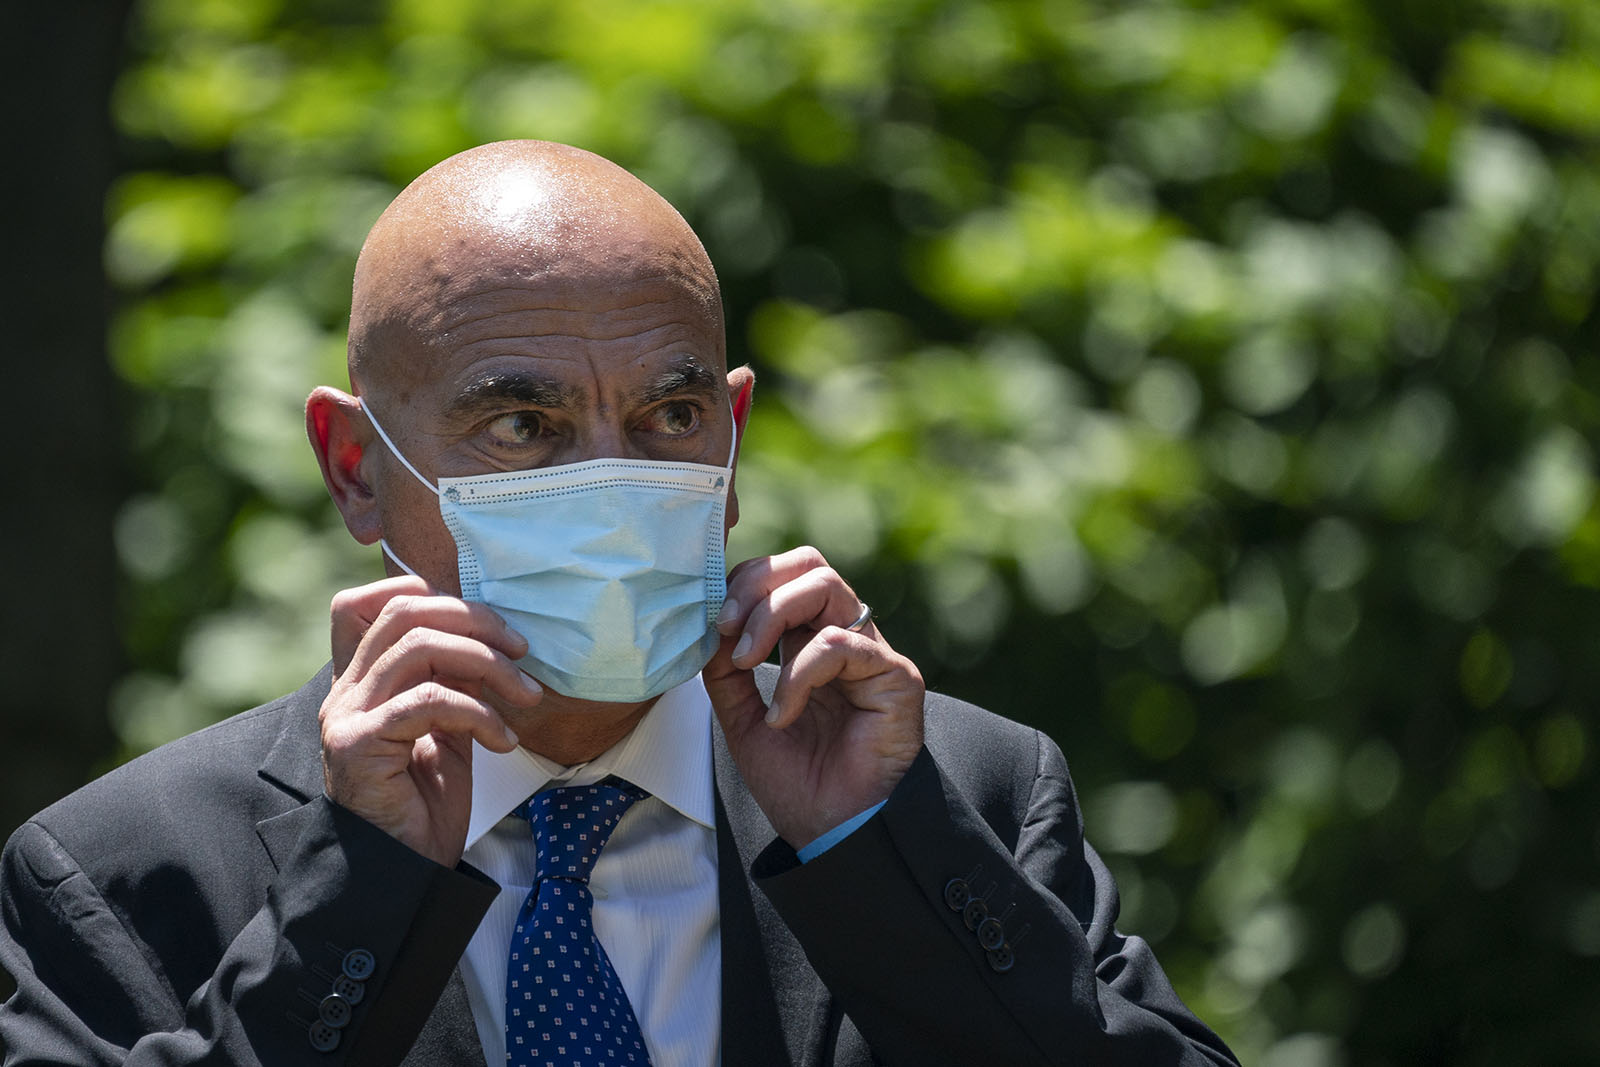 Moncef Slaoui, the former head of GlaxoSmithKlines vaccines division, listens as President Donald Trump delivers remarks about coronavirus vaccine development in the Rose Garden of the White House on May 15 in Washington.